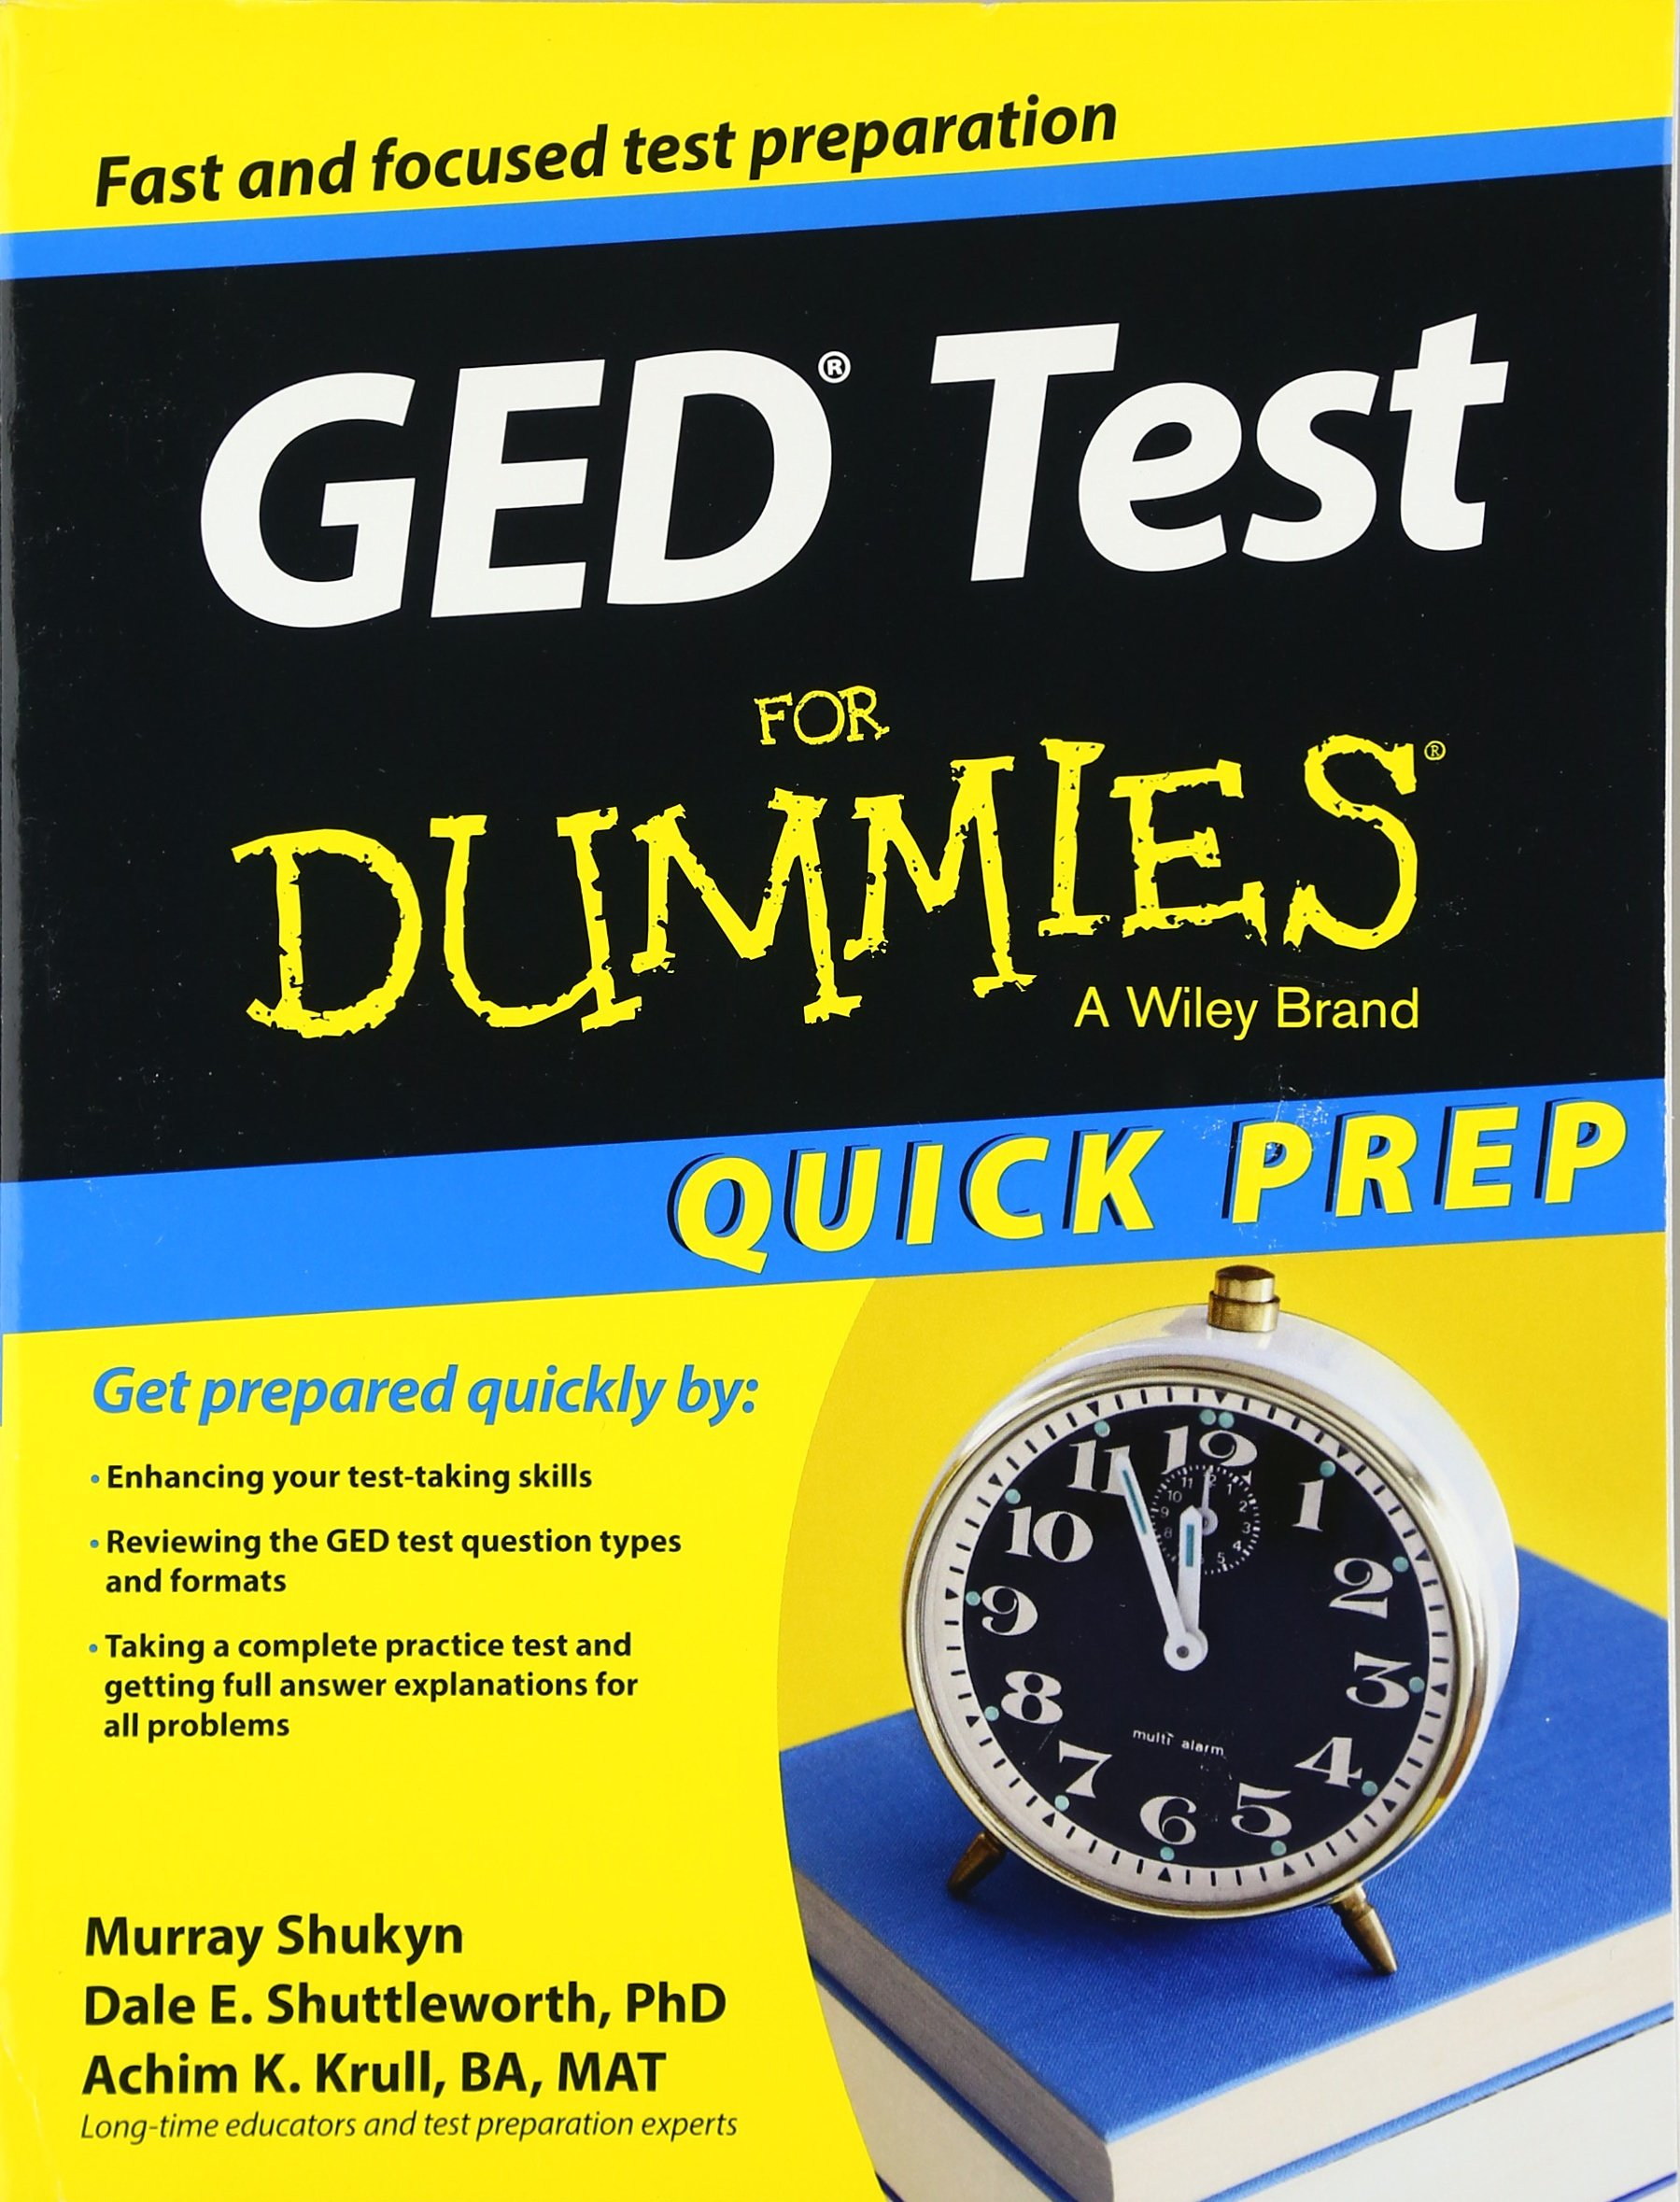 academy mats test the free expect what mat to whats on guide review pert best study is